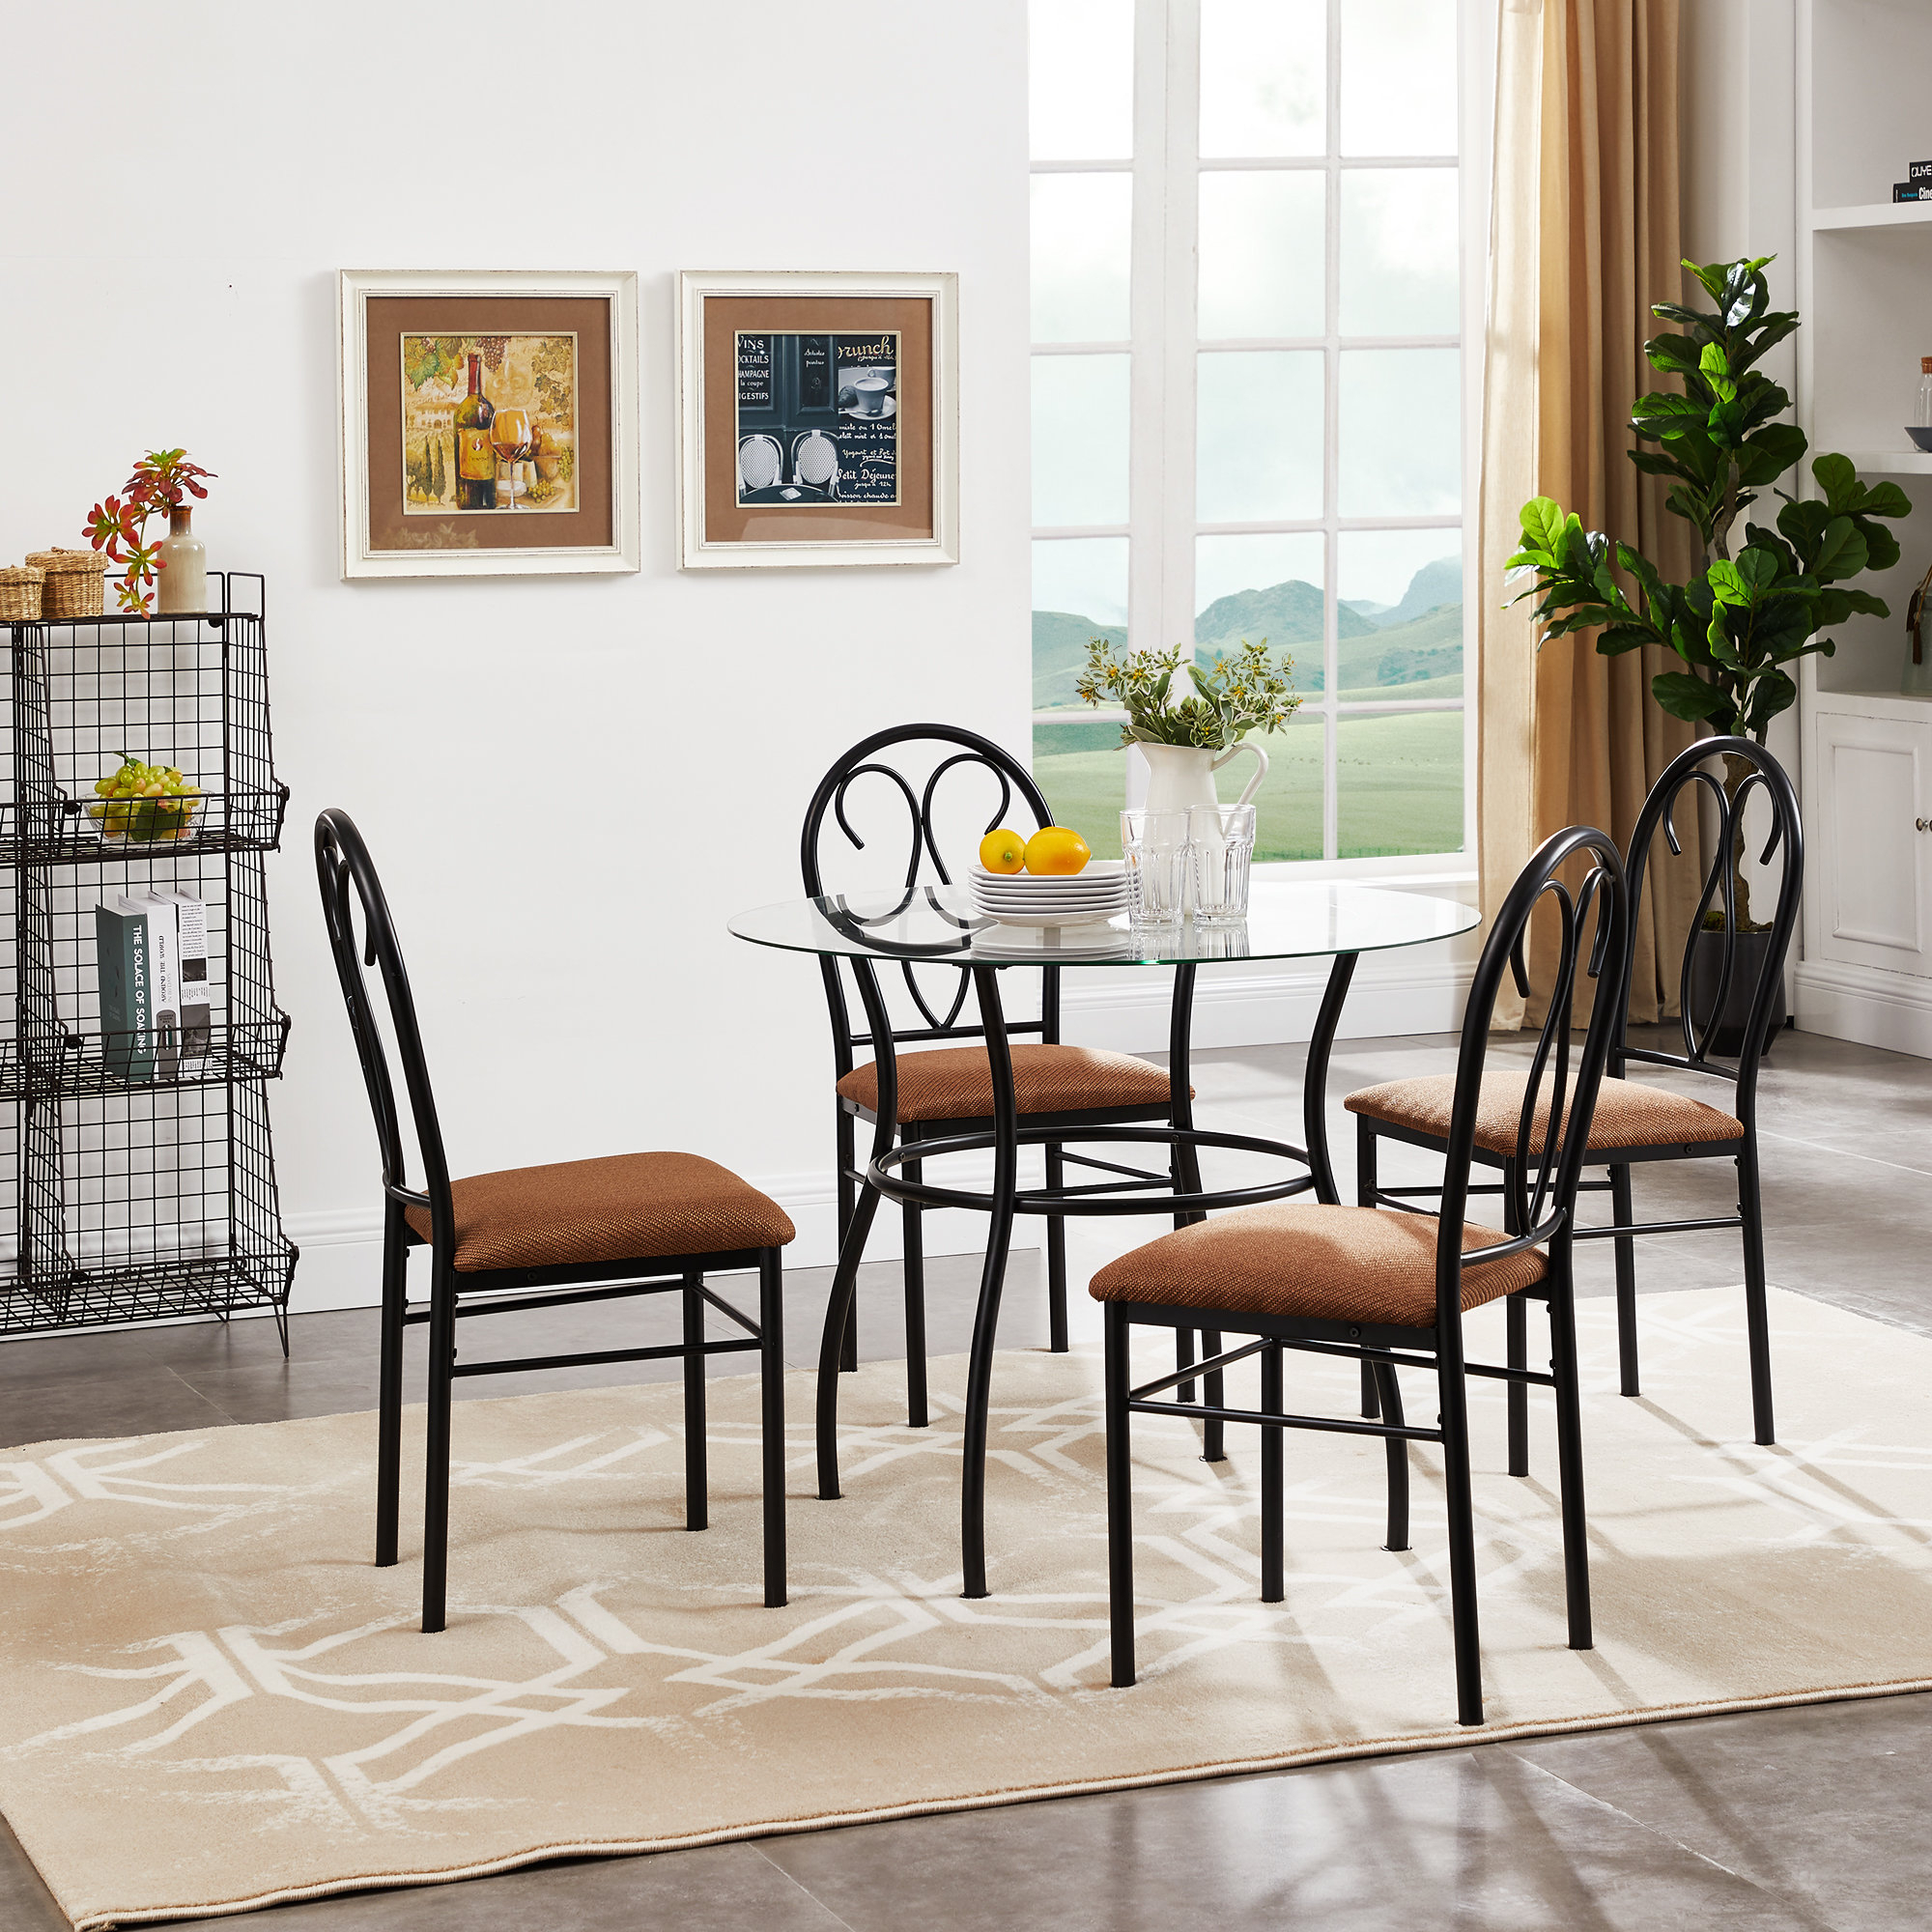 Riceboro 5 Piece Dining Set Regarding Most Popular Turnalar 5 Piece Dining Sets (View 6 of 20)